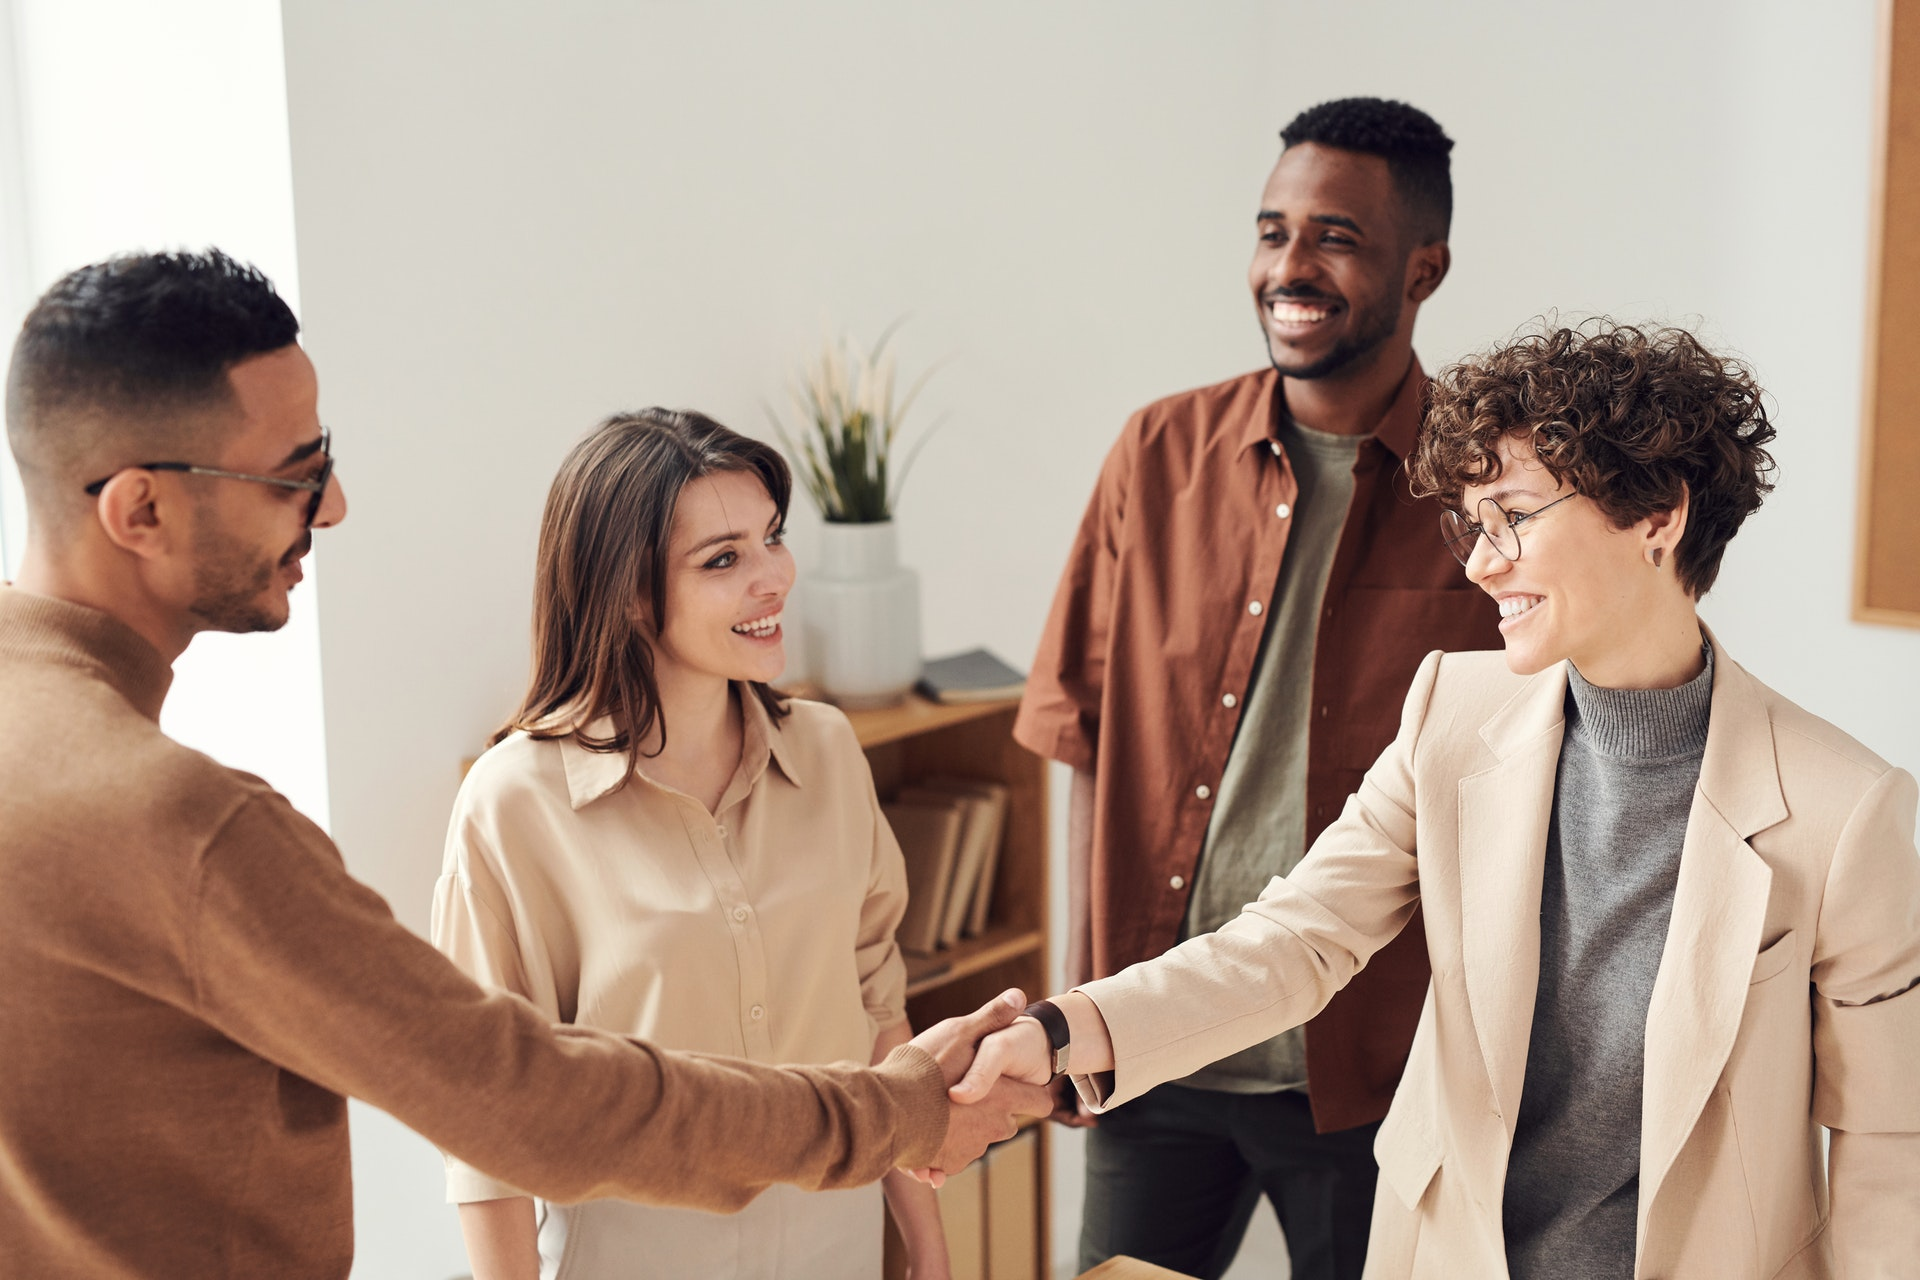 Real estate agents shaking hands of clients and smiling